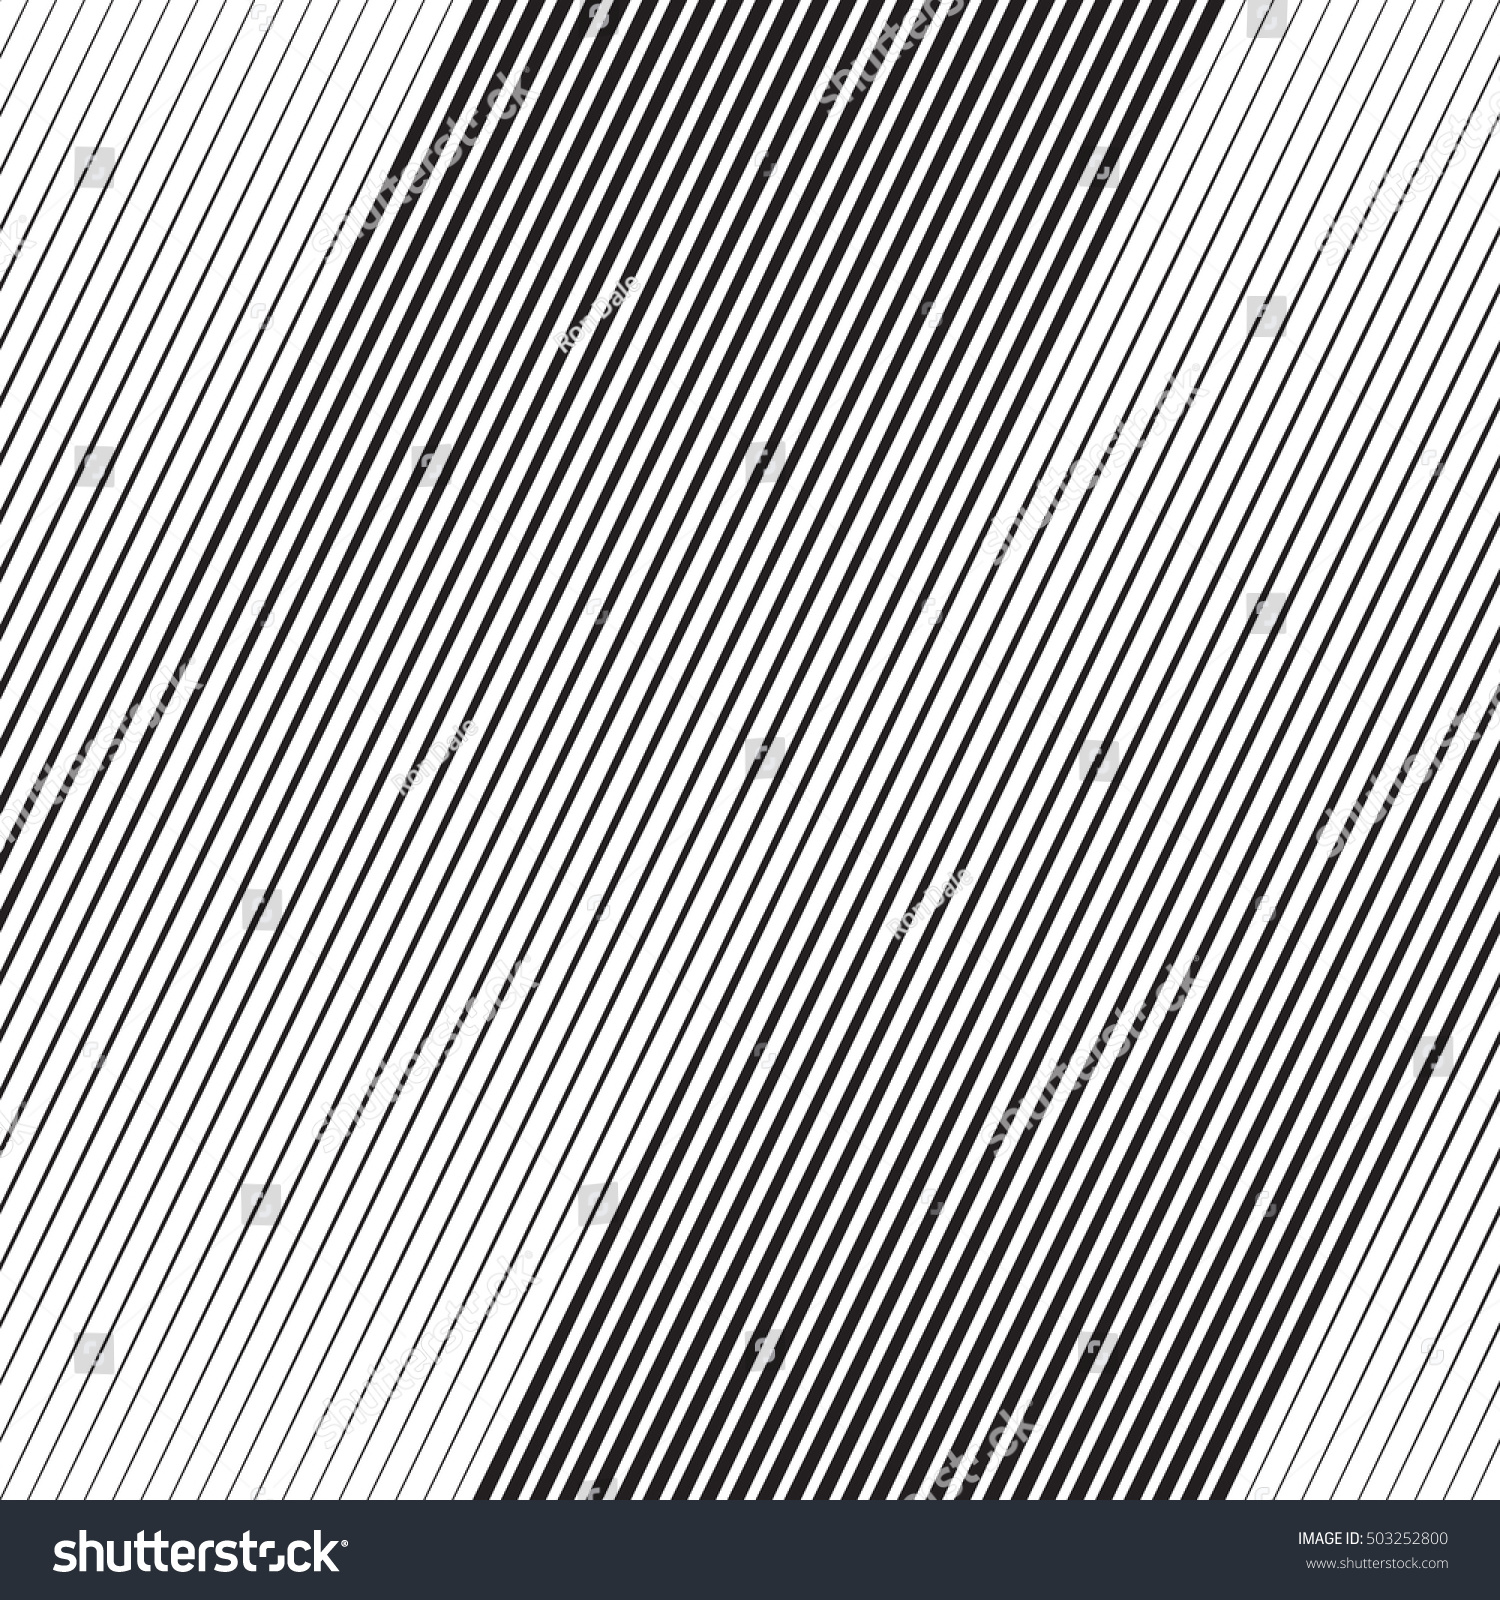 Line Art Vs Halftone : Vector halftone line transition abstract wallpaper stock